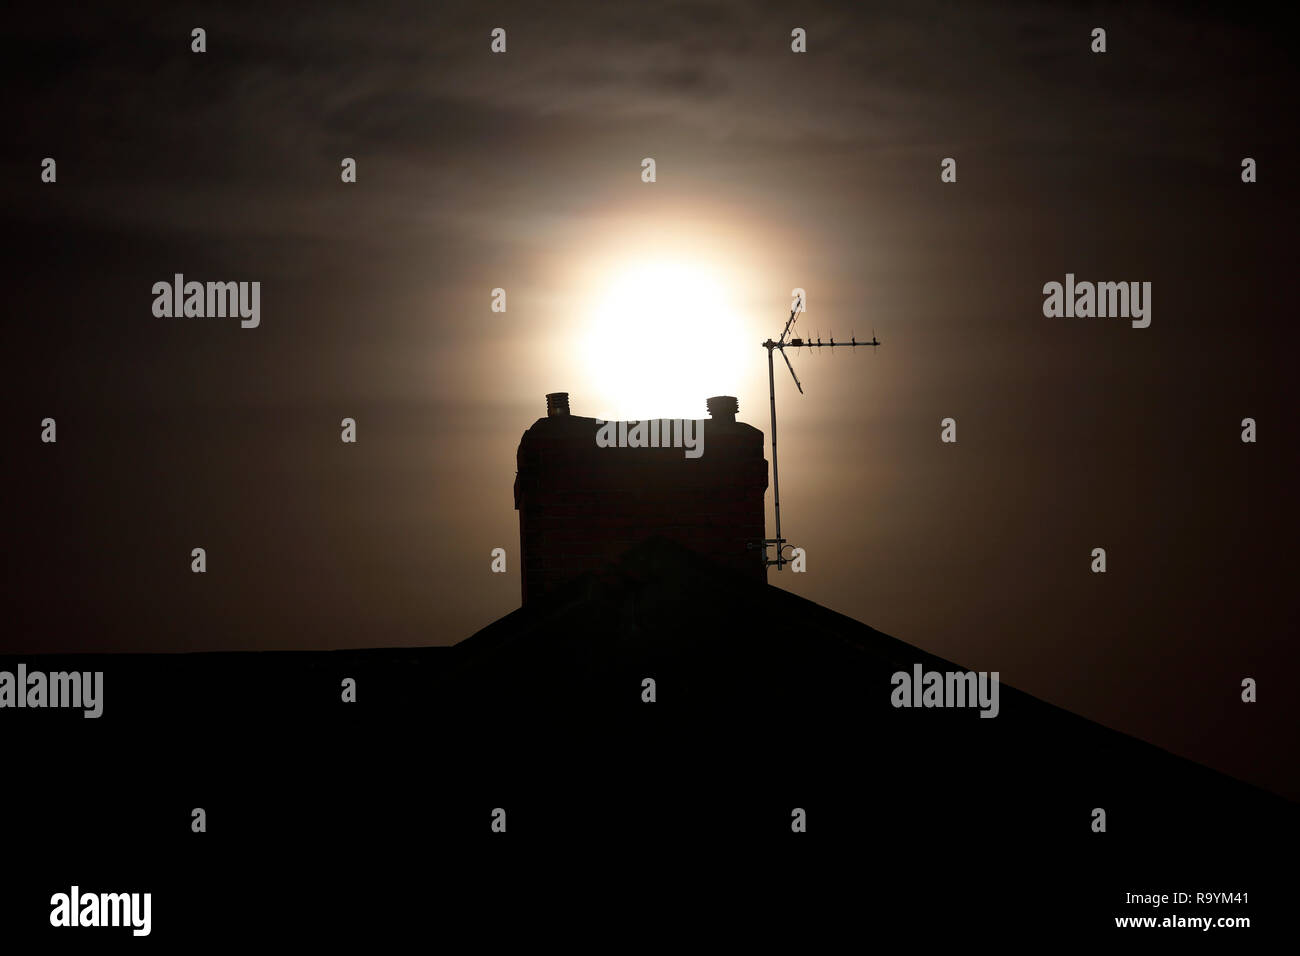 The moon behind a rooftop chimney - Stock Image